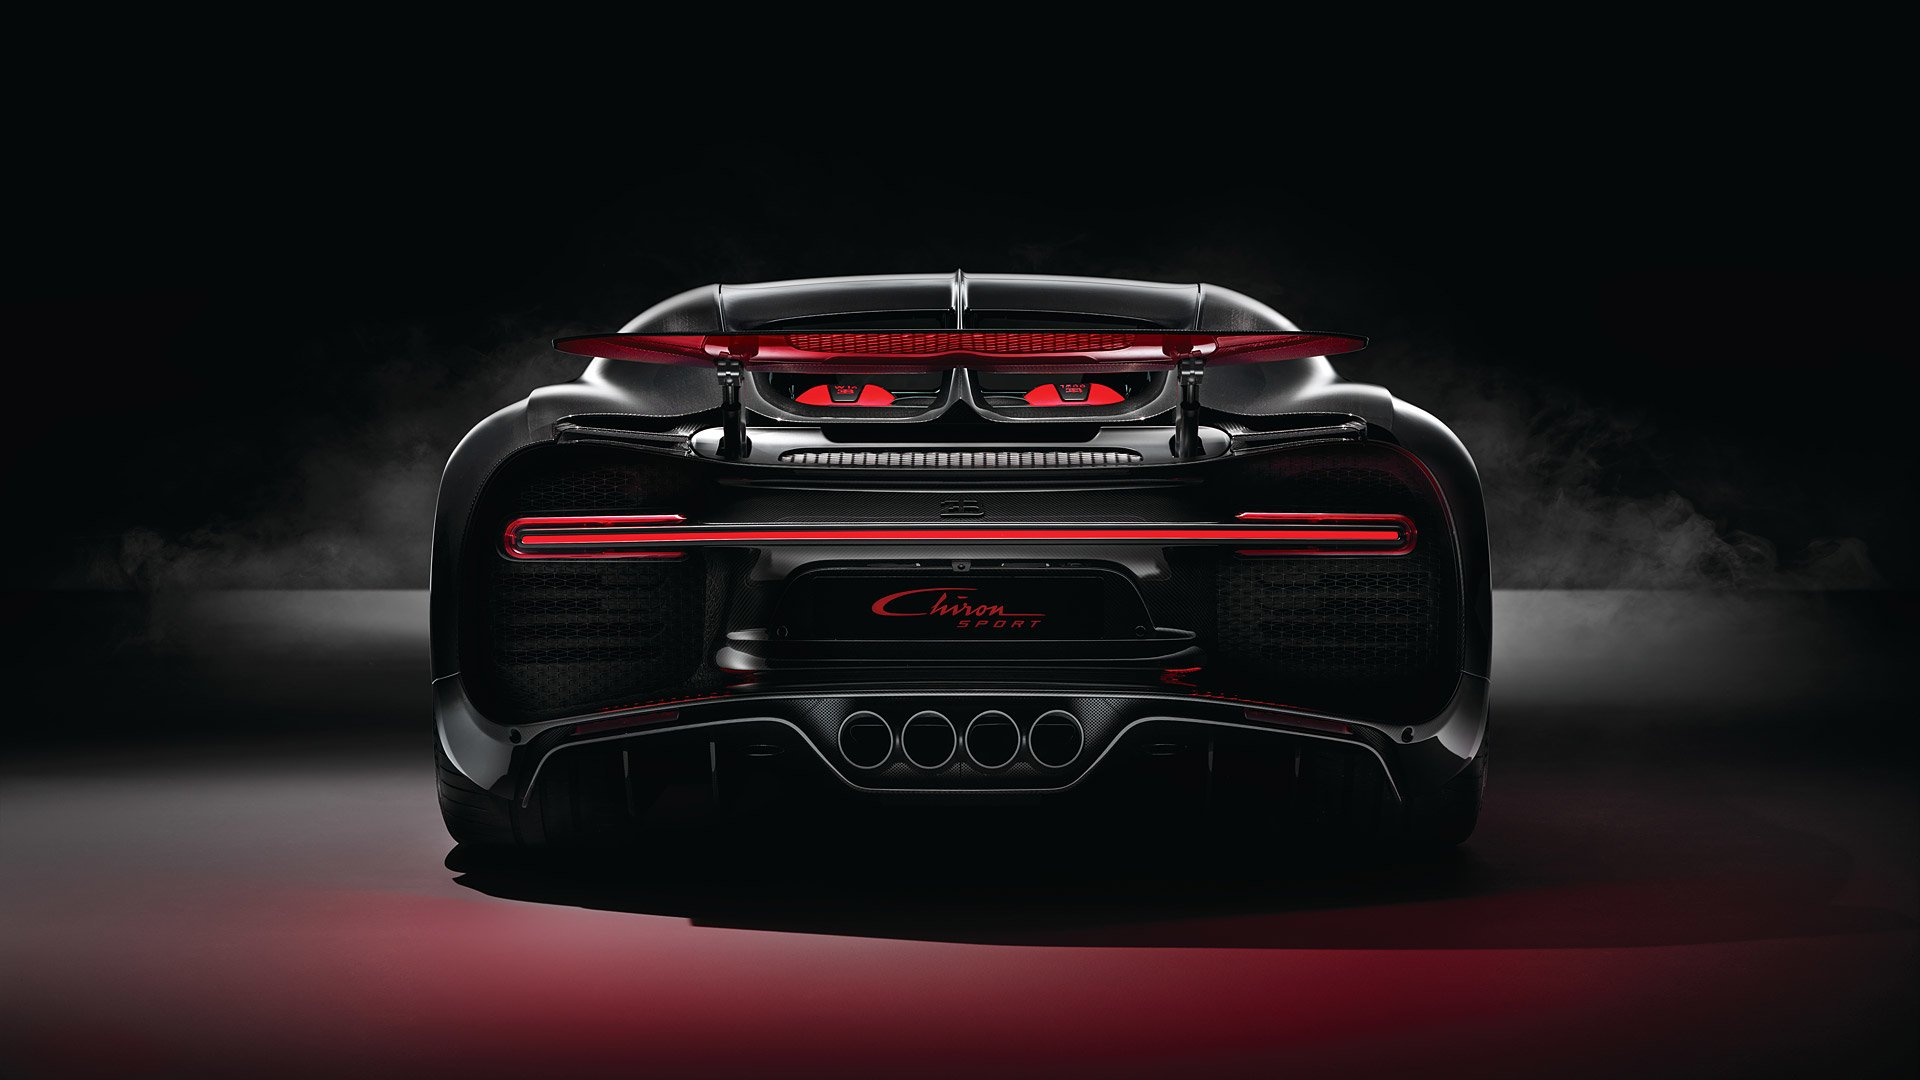 Vehicles - Bugatti Chiron  Bugatti Chiron Sport Sport Car Hypercar Red Car Car Wallpaper